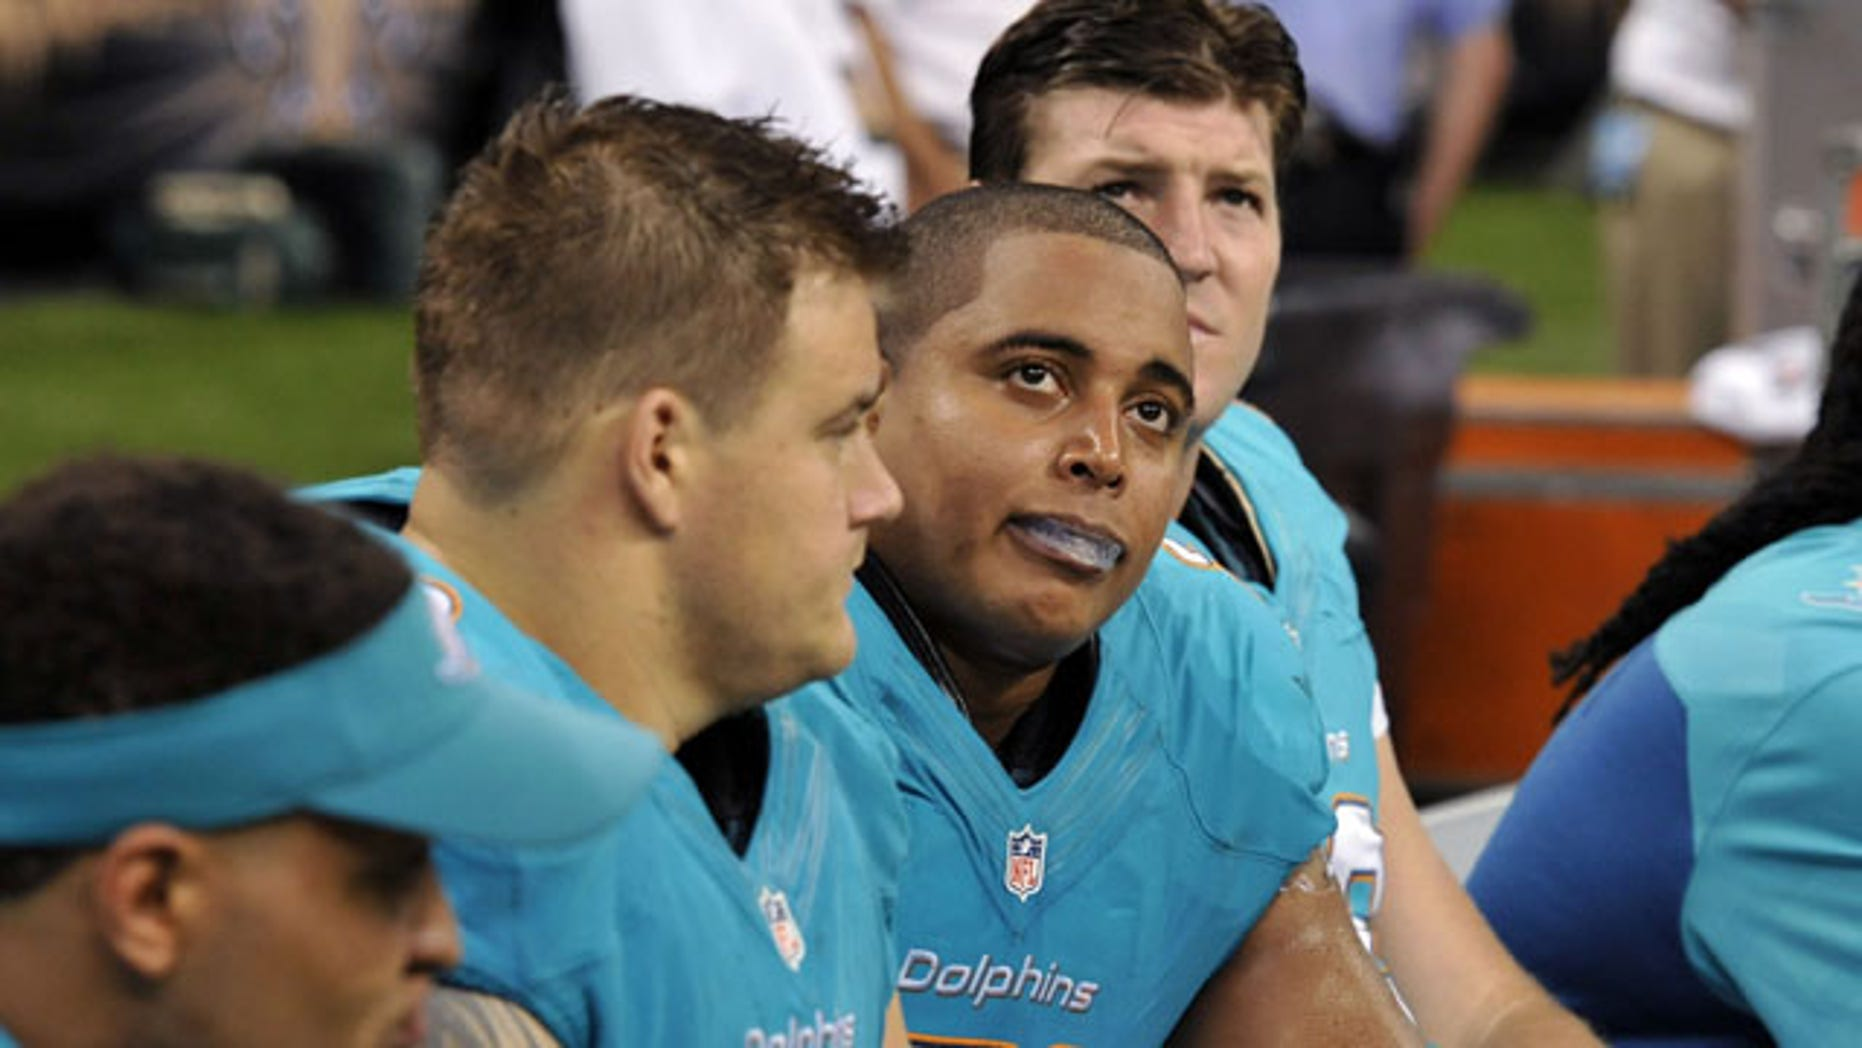 Sept. 30, 2013: Miami Dolphins guard Richie Incognito (68), center left, and tackle Jonathan Martin (71), center right, sit on the bench in the second half of an NFL football game against the New Orleans Saints in New Orleans. (AP)